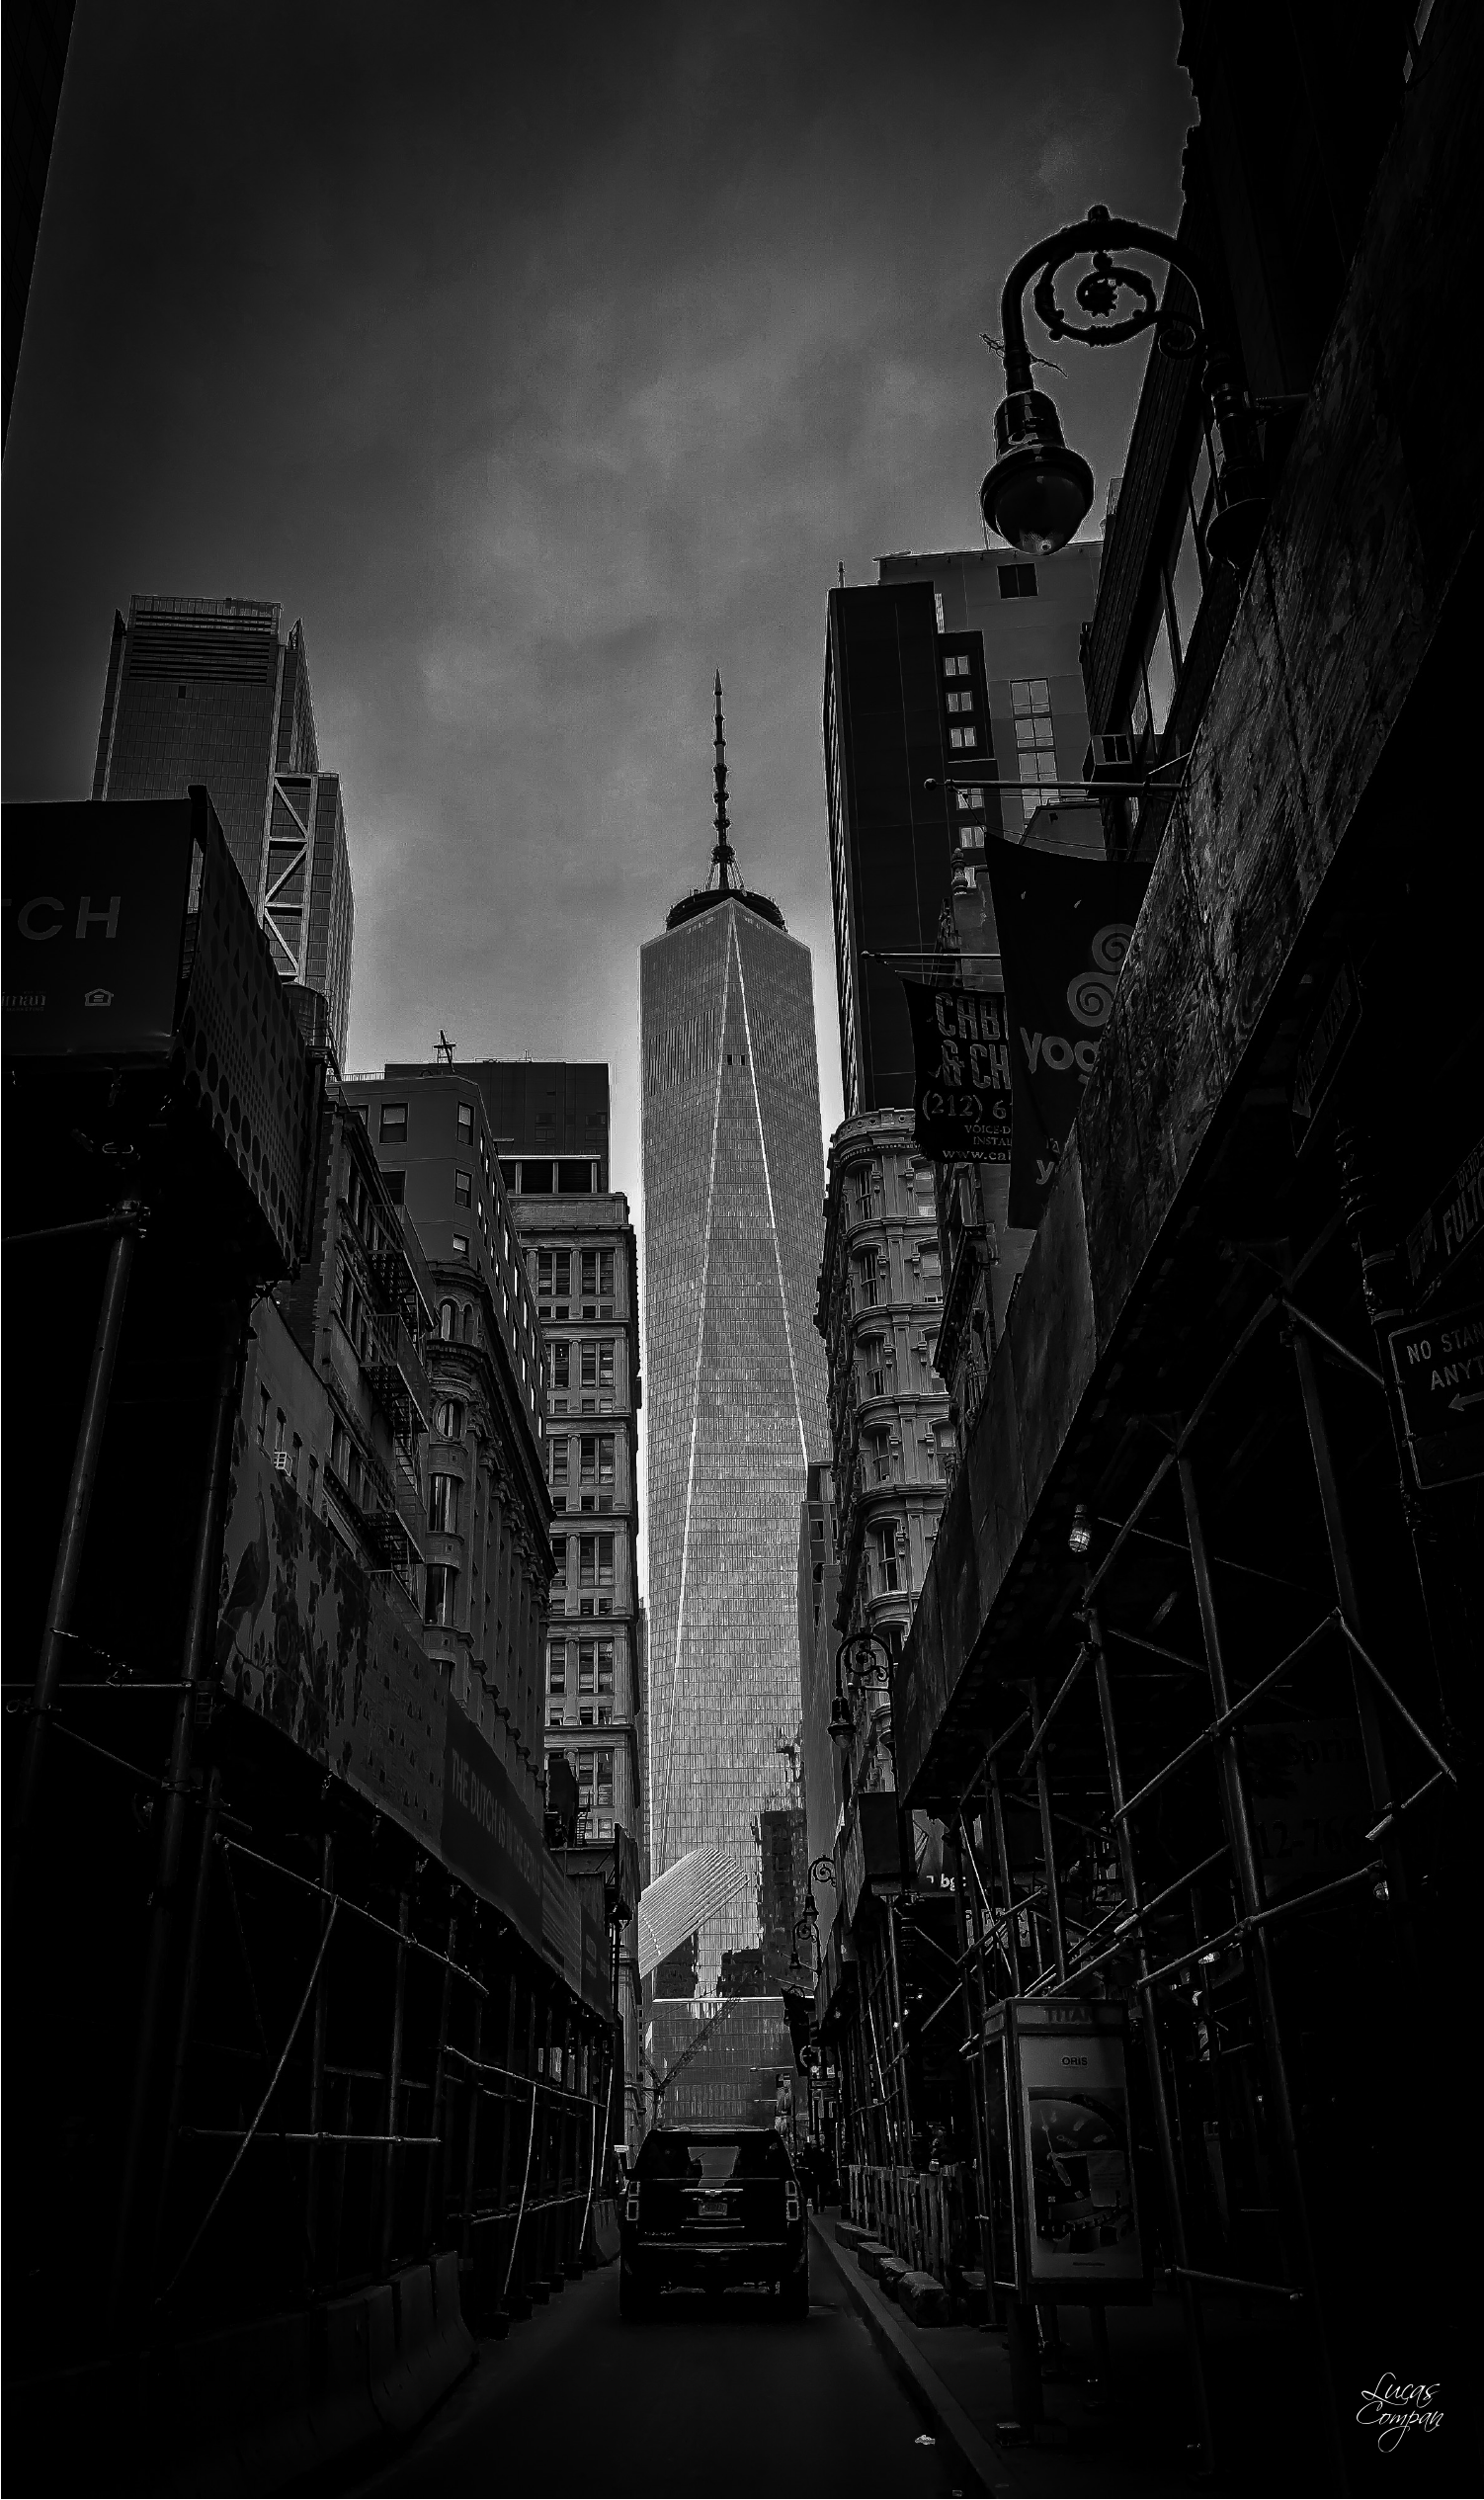 there's a storm coming. fulton street, lower manhattan, new york city.